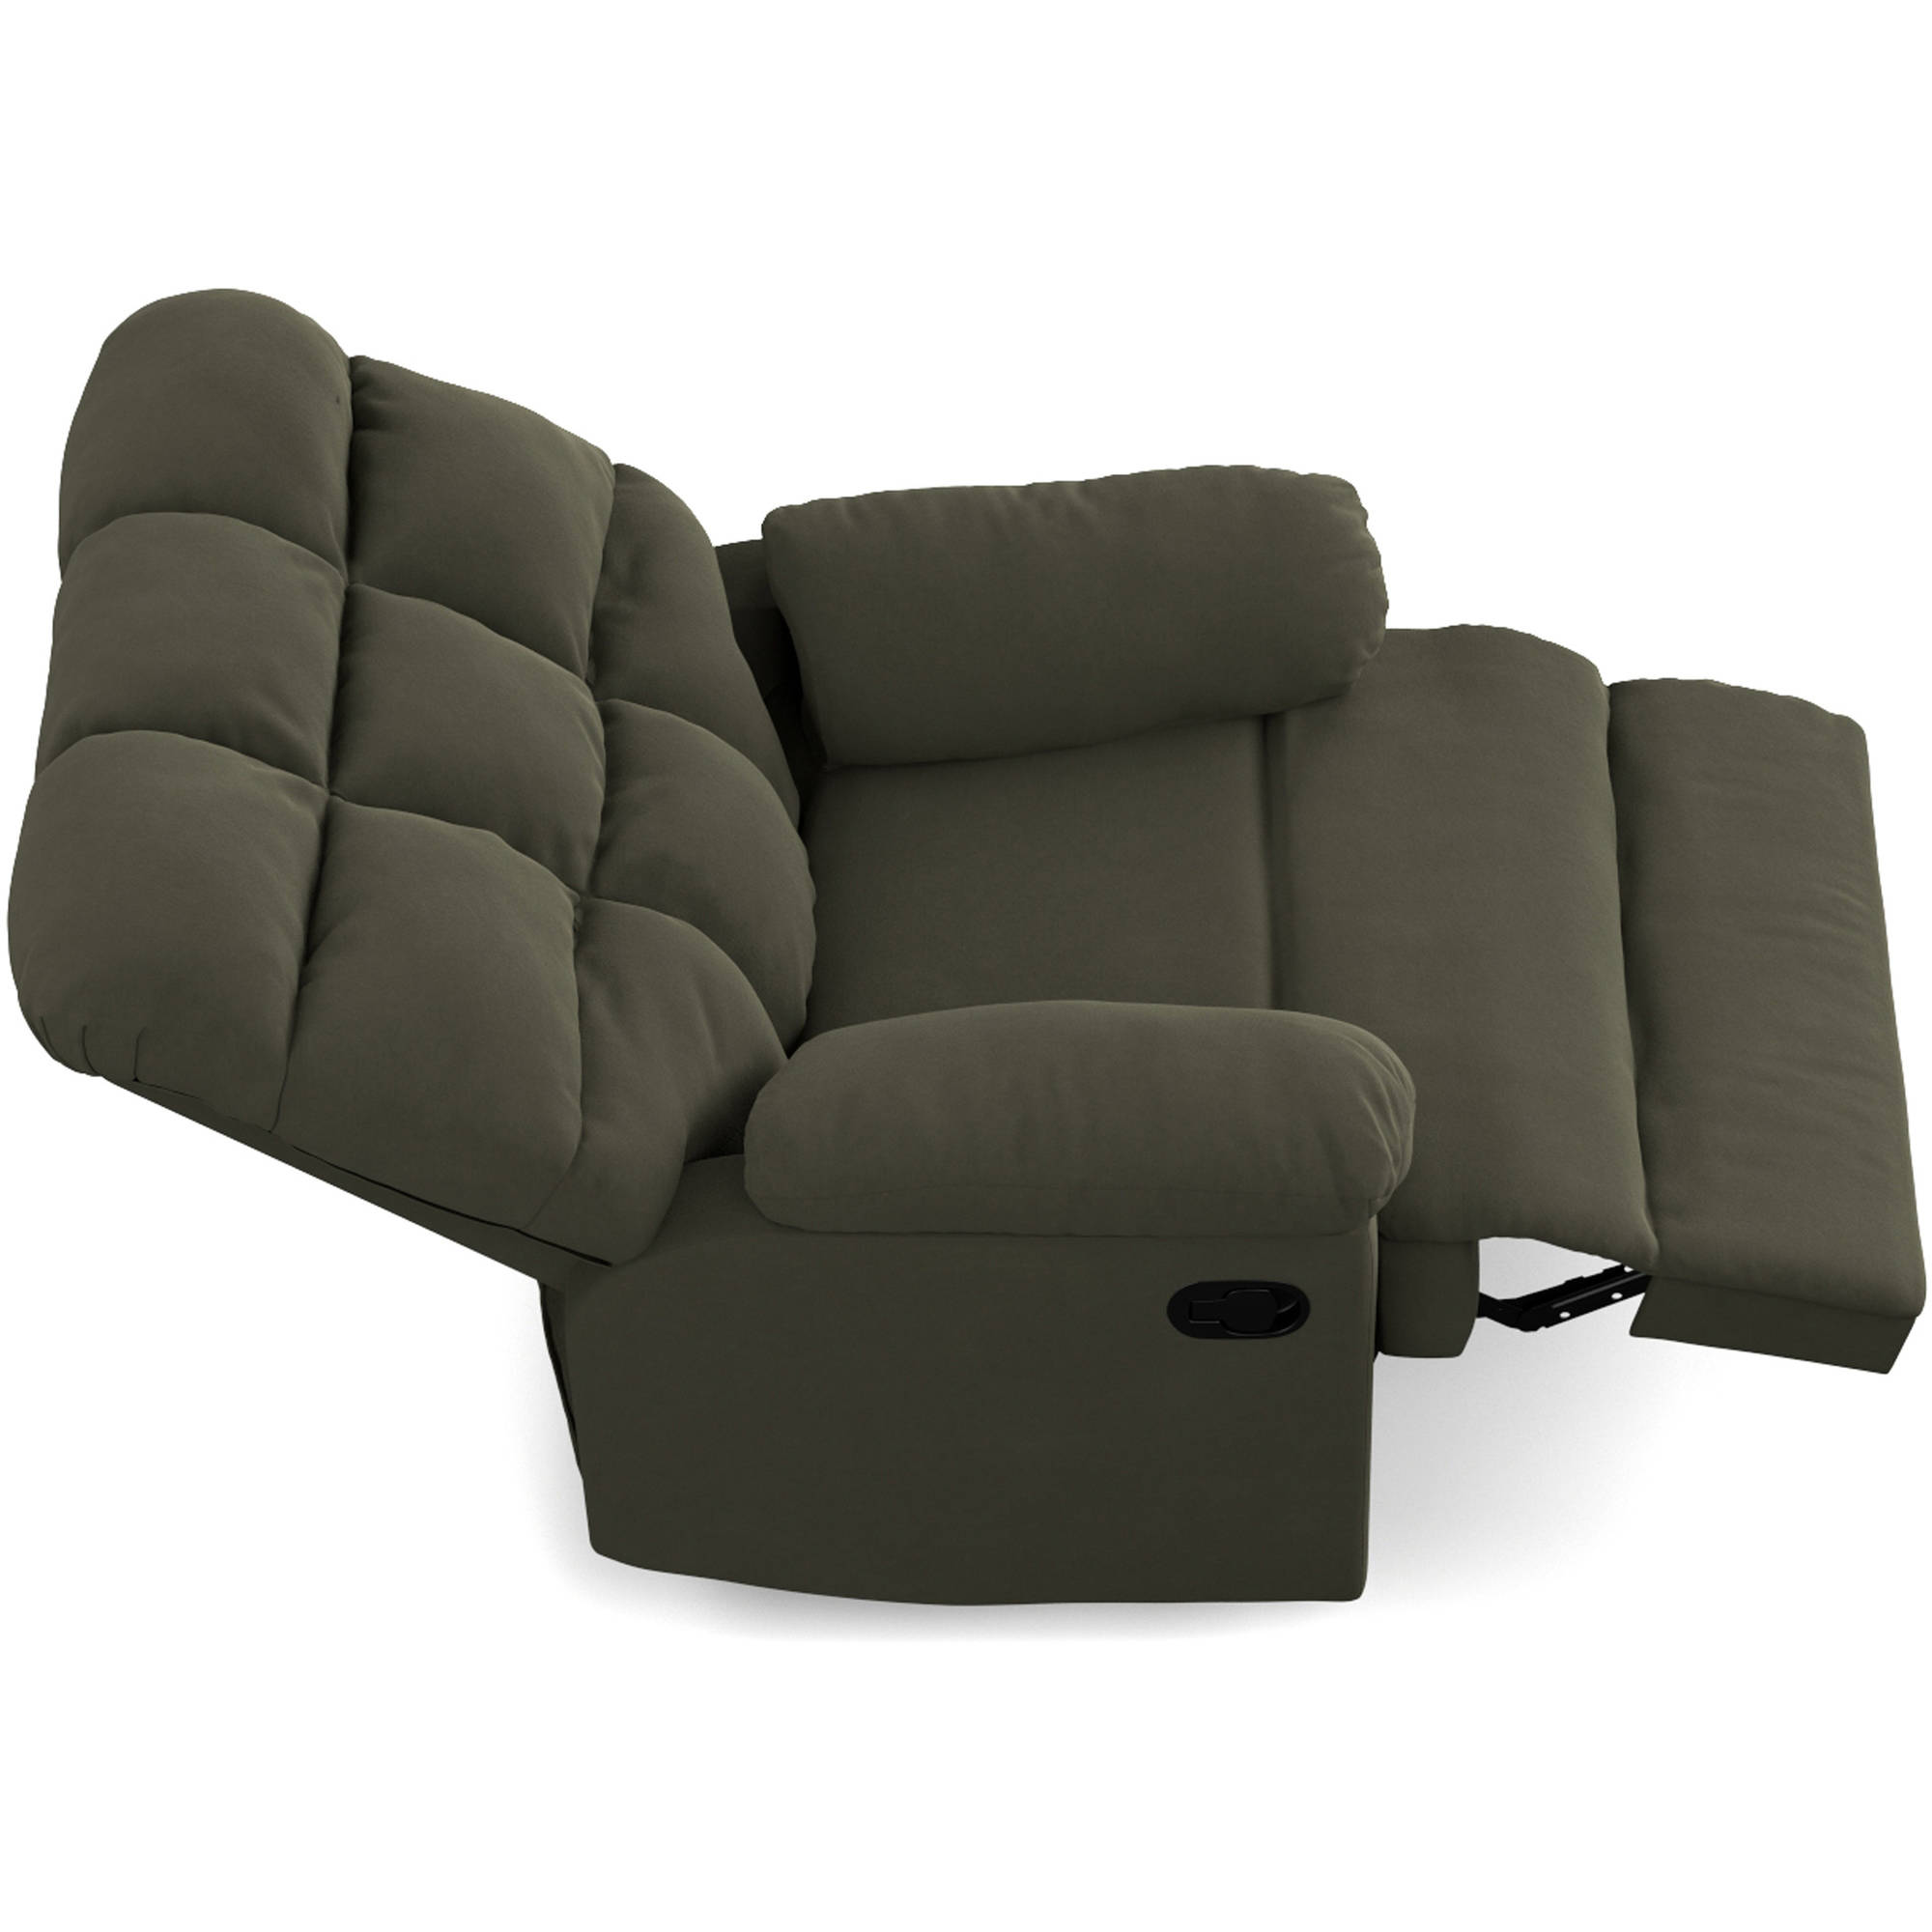 sears recliner recliners rocker leather sofa used full cheap inexpensive sofas power size set double lift reclining sets swivel of glider and couch chairs